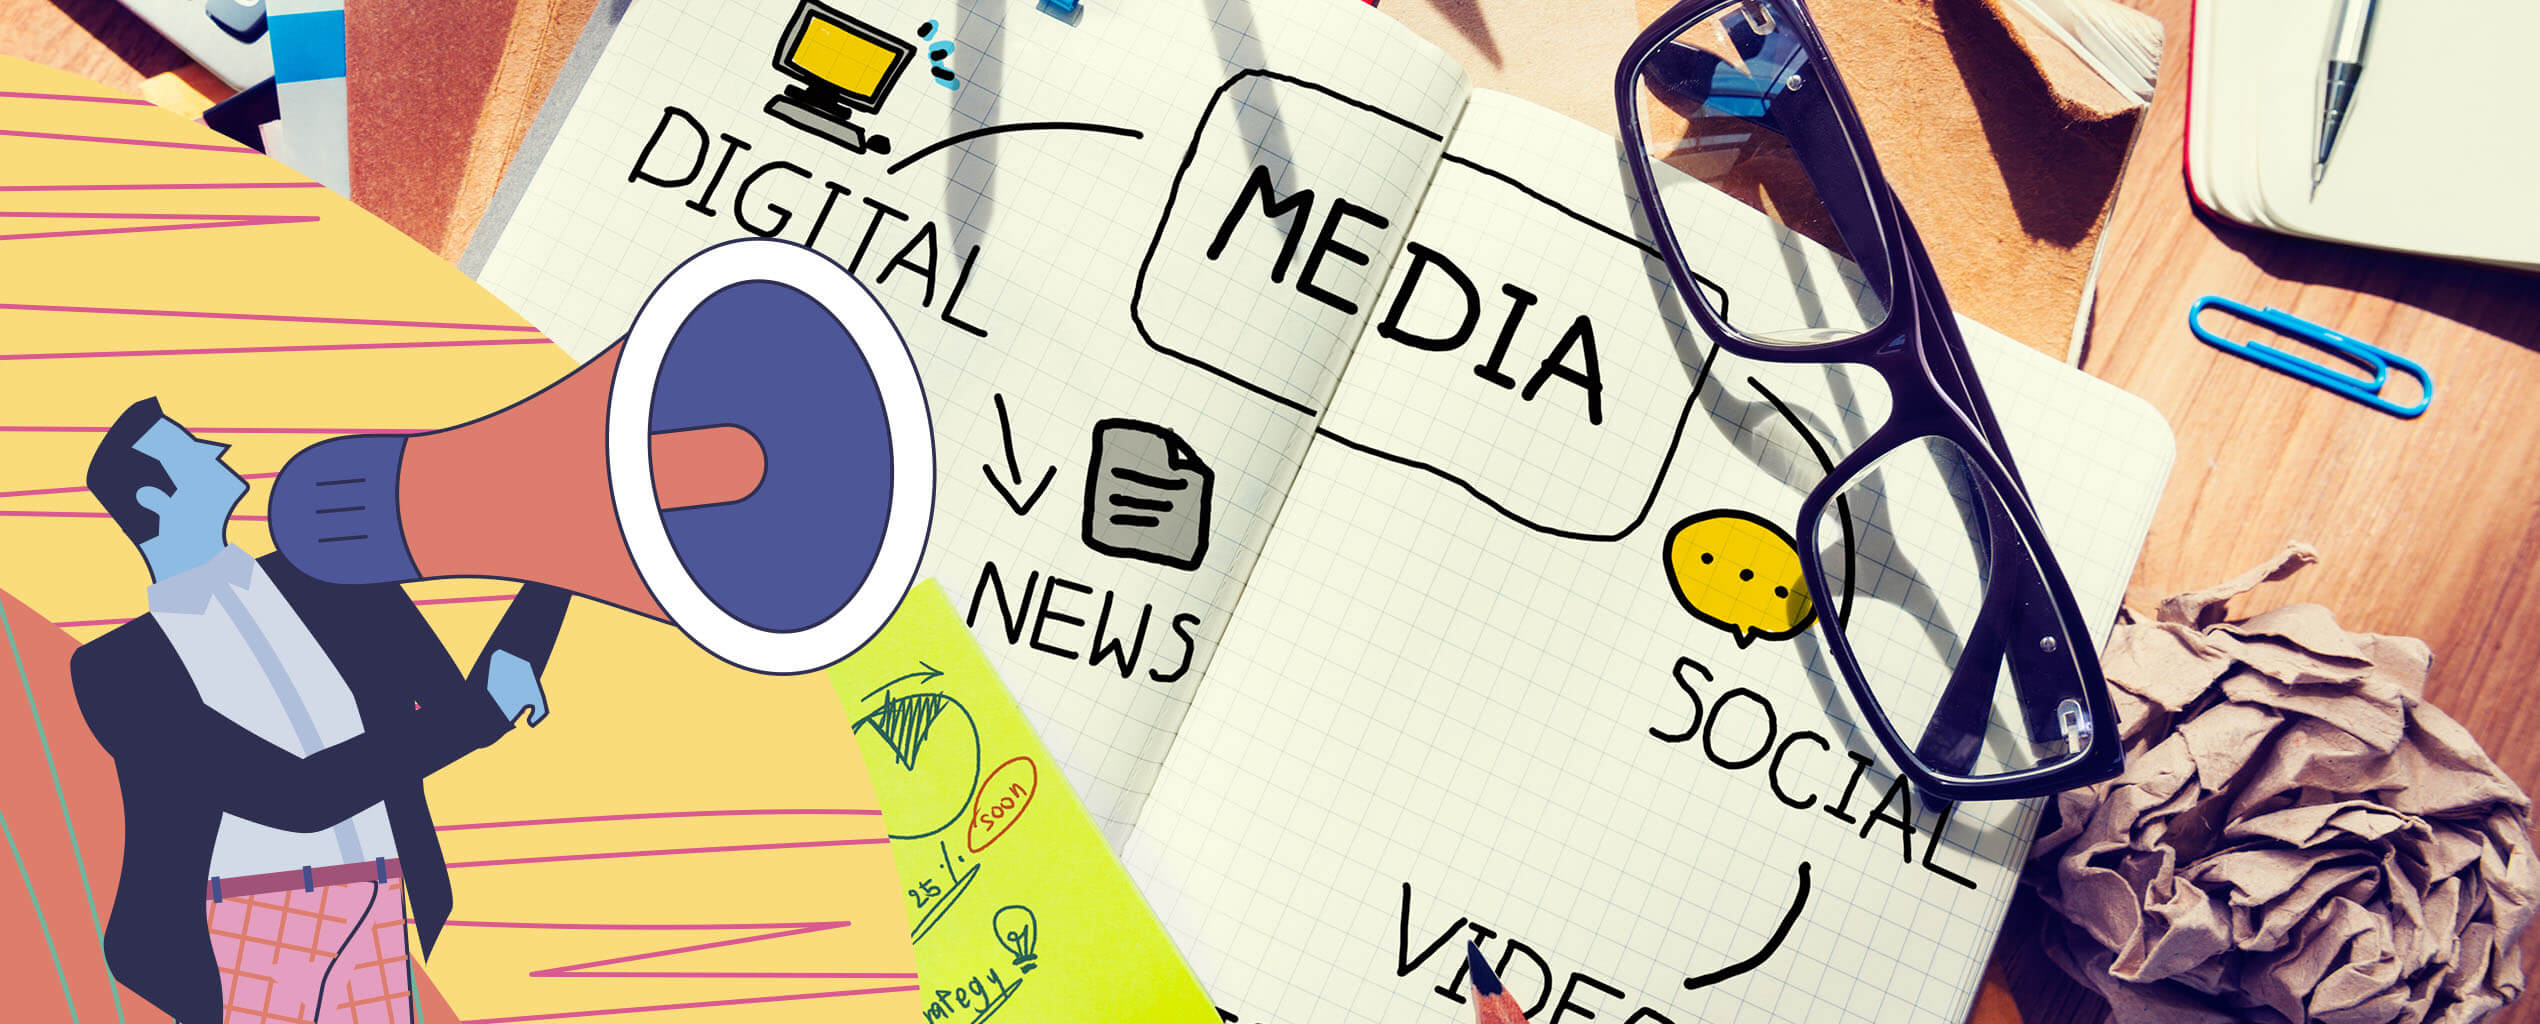 On Point PR and Public Relations content strategy